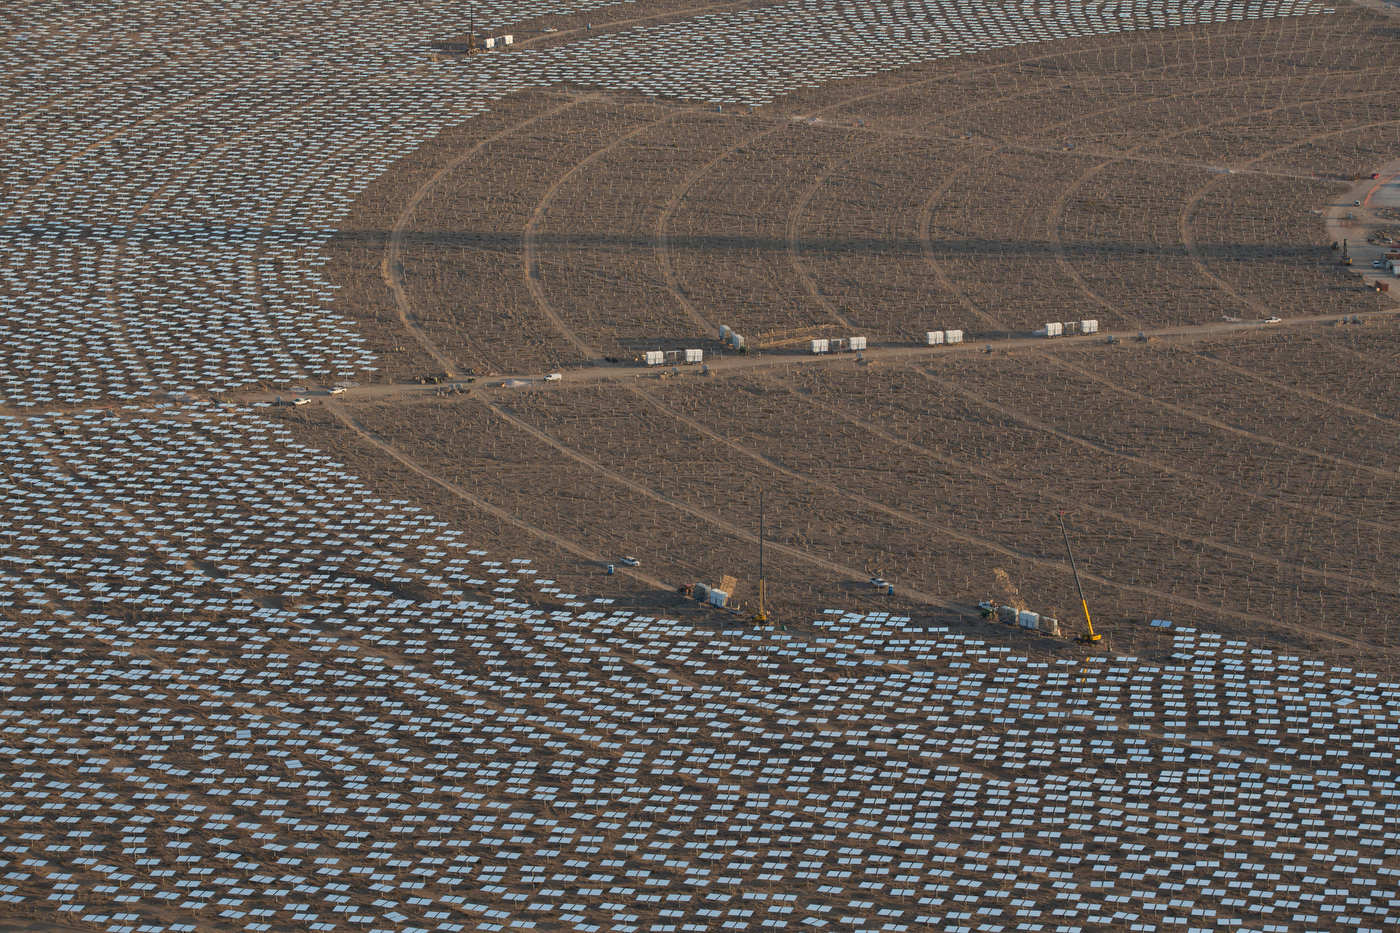 IVANPAH; CALIFORNIA; MAY 2012: An aerial view of Tower One's heliostats, with crews working, at the Ivanpah Solar Project (photo Gilles Mingasson/Getty Images for Bechtel).